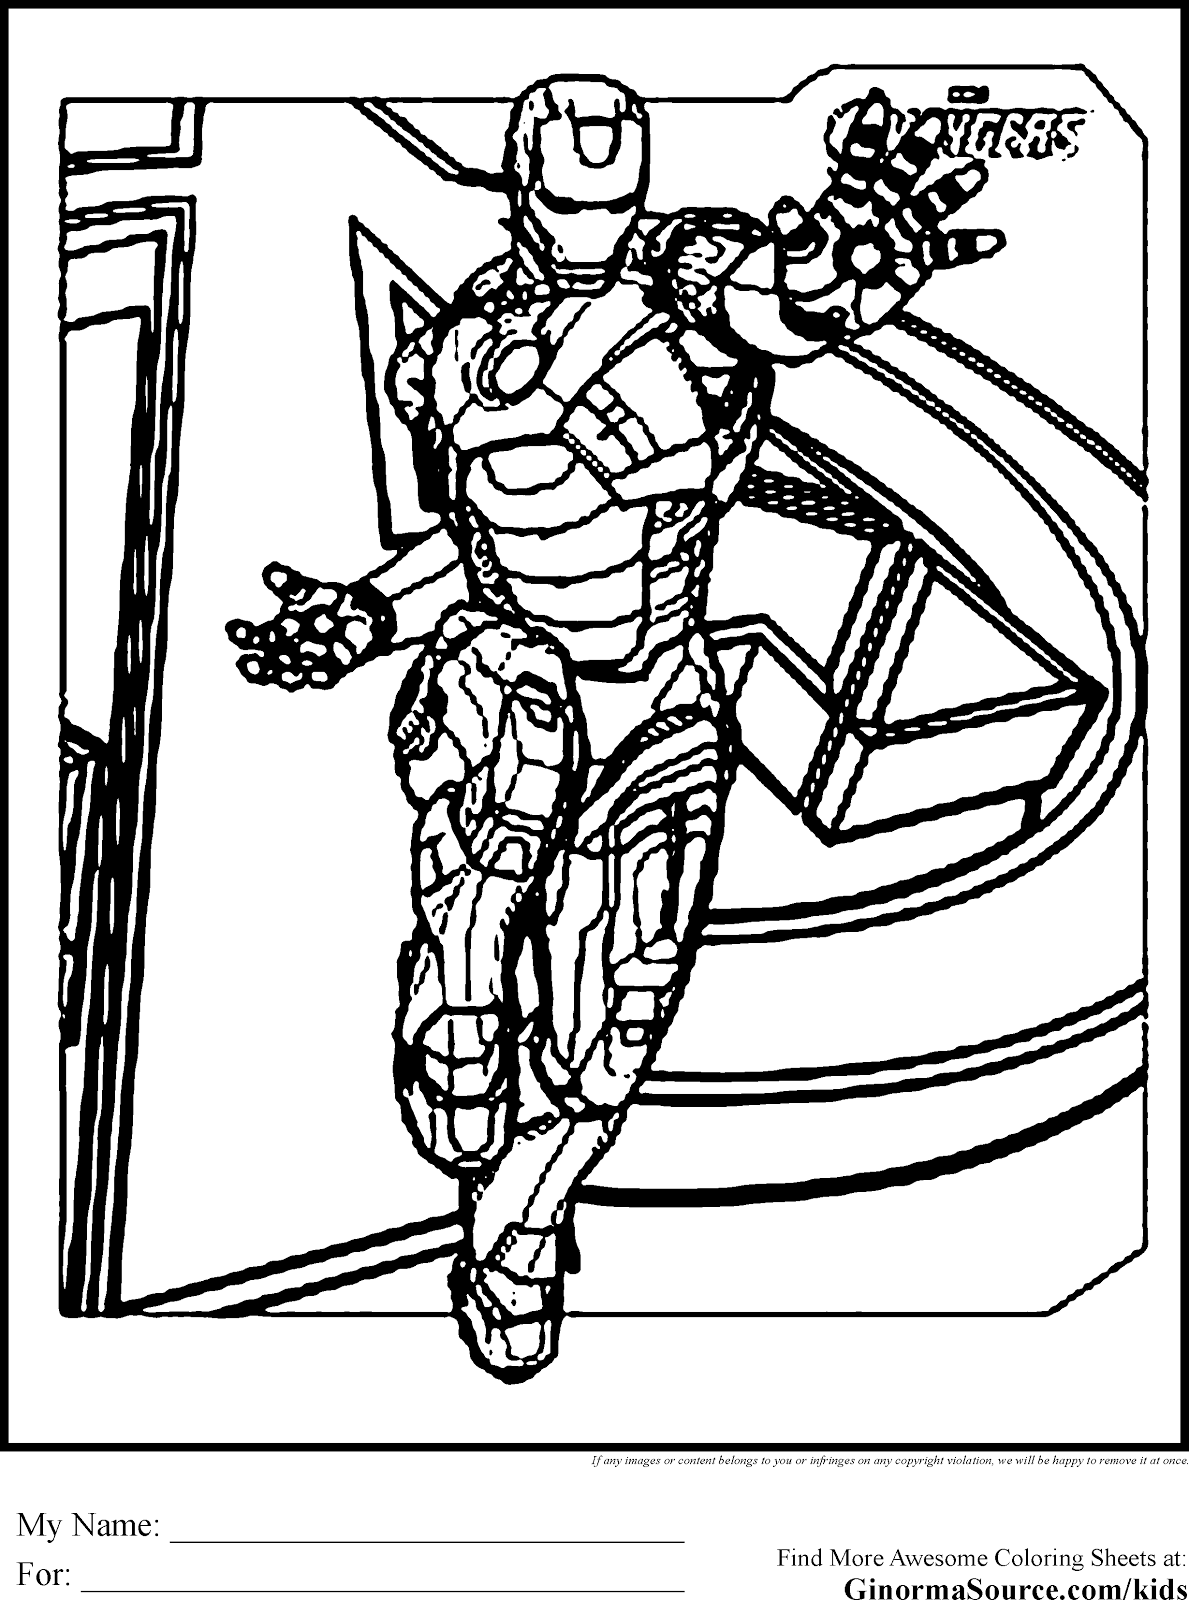 Unique Comics Animation: great avengers coloring pages